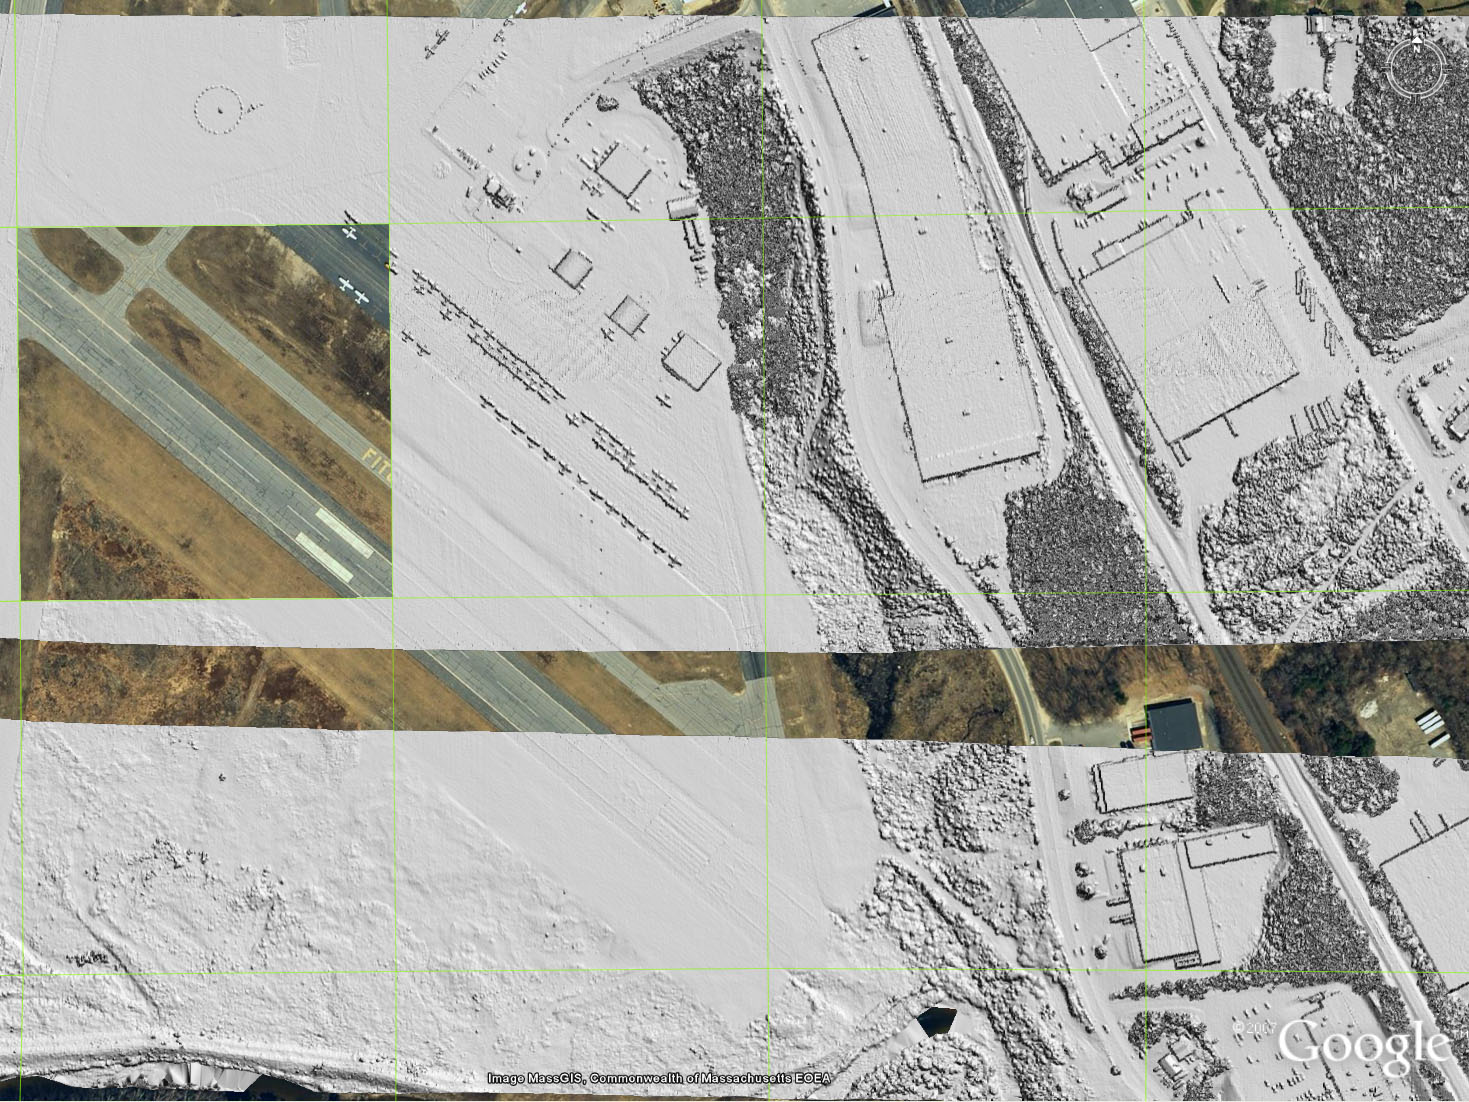 Visualizing LIDAR in Google Earth (fast & streaming, source